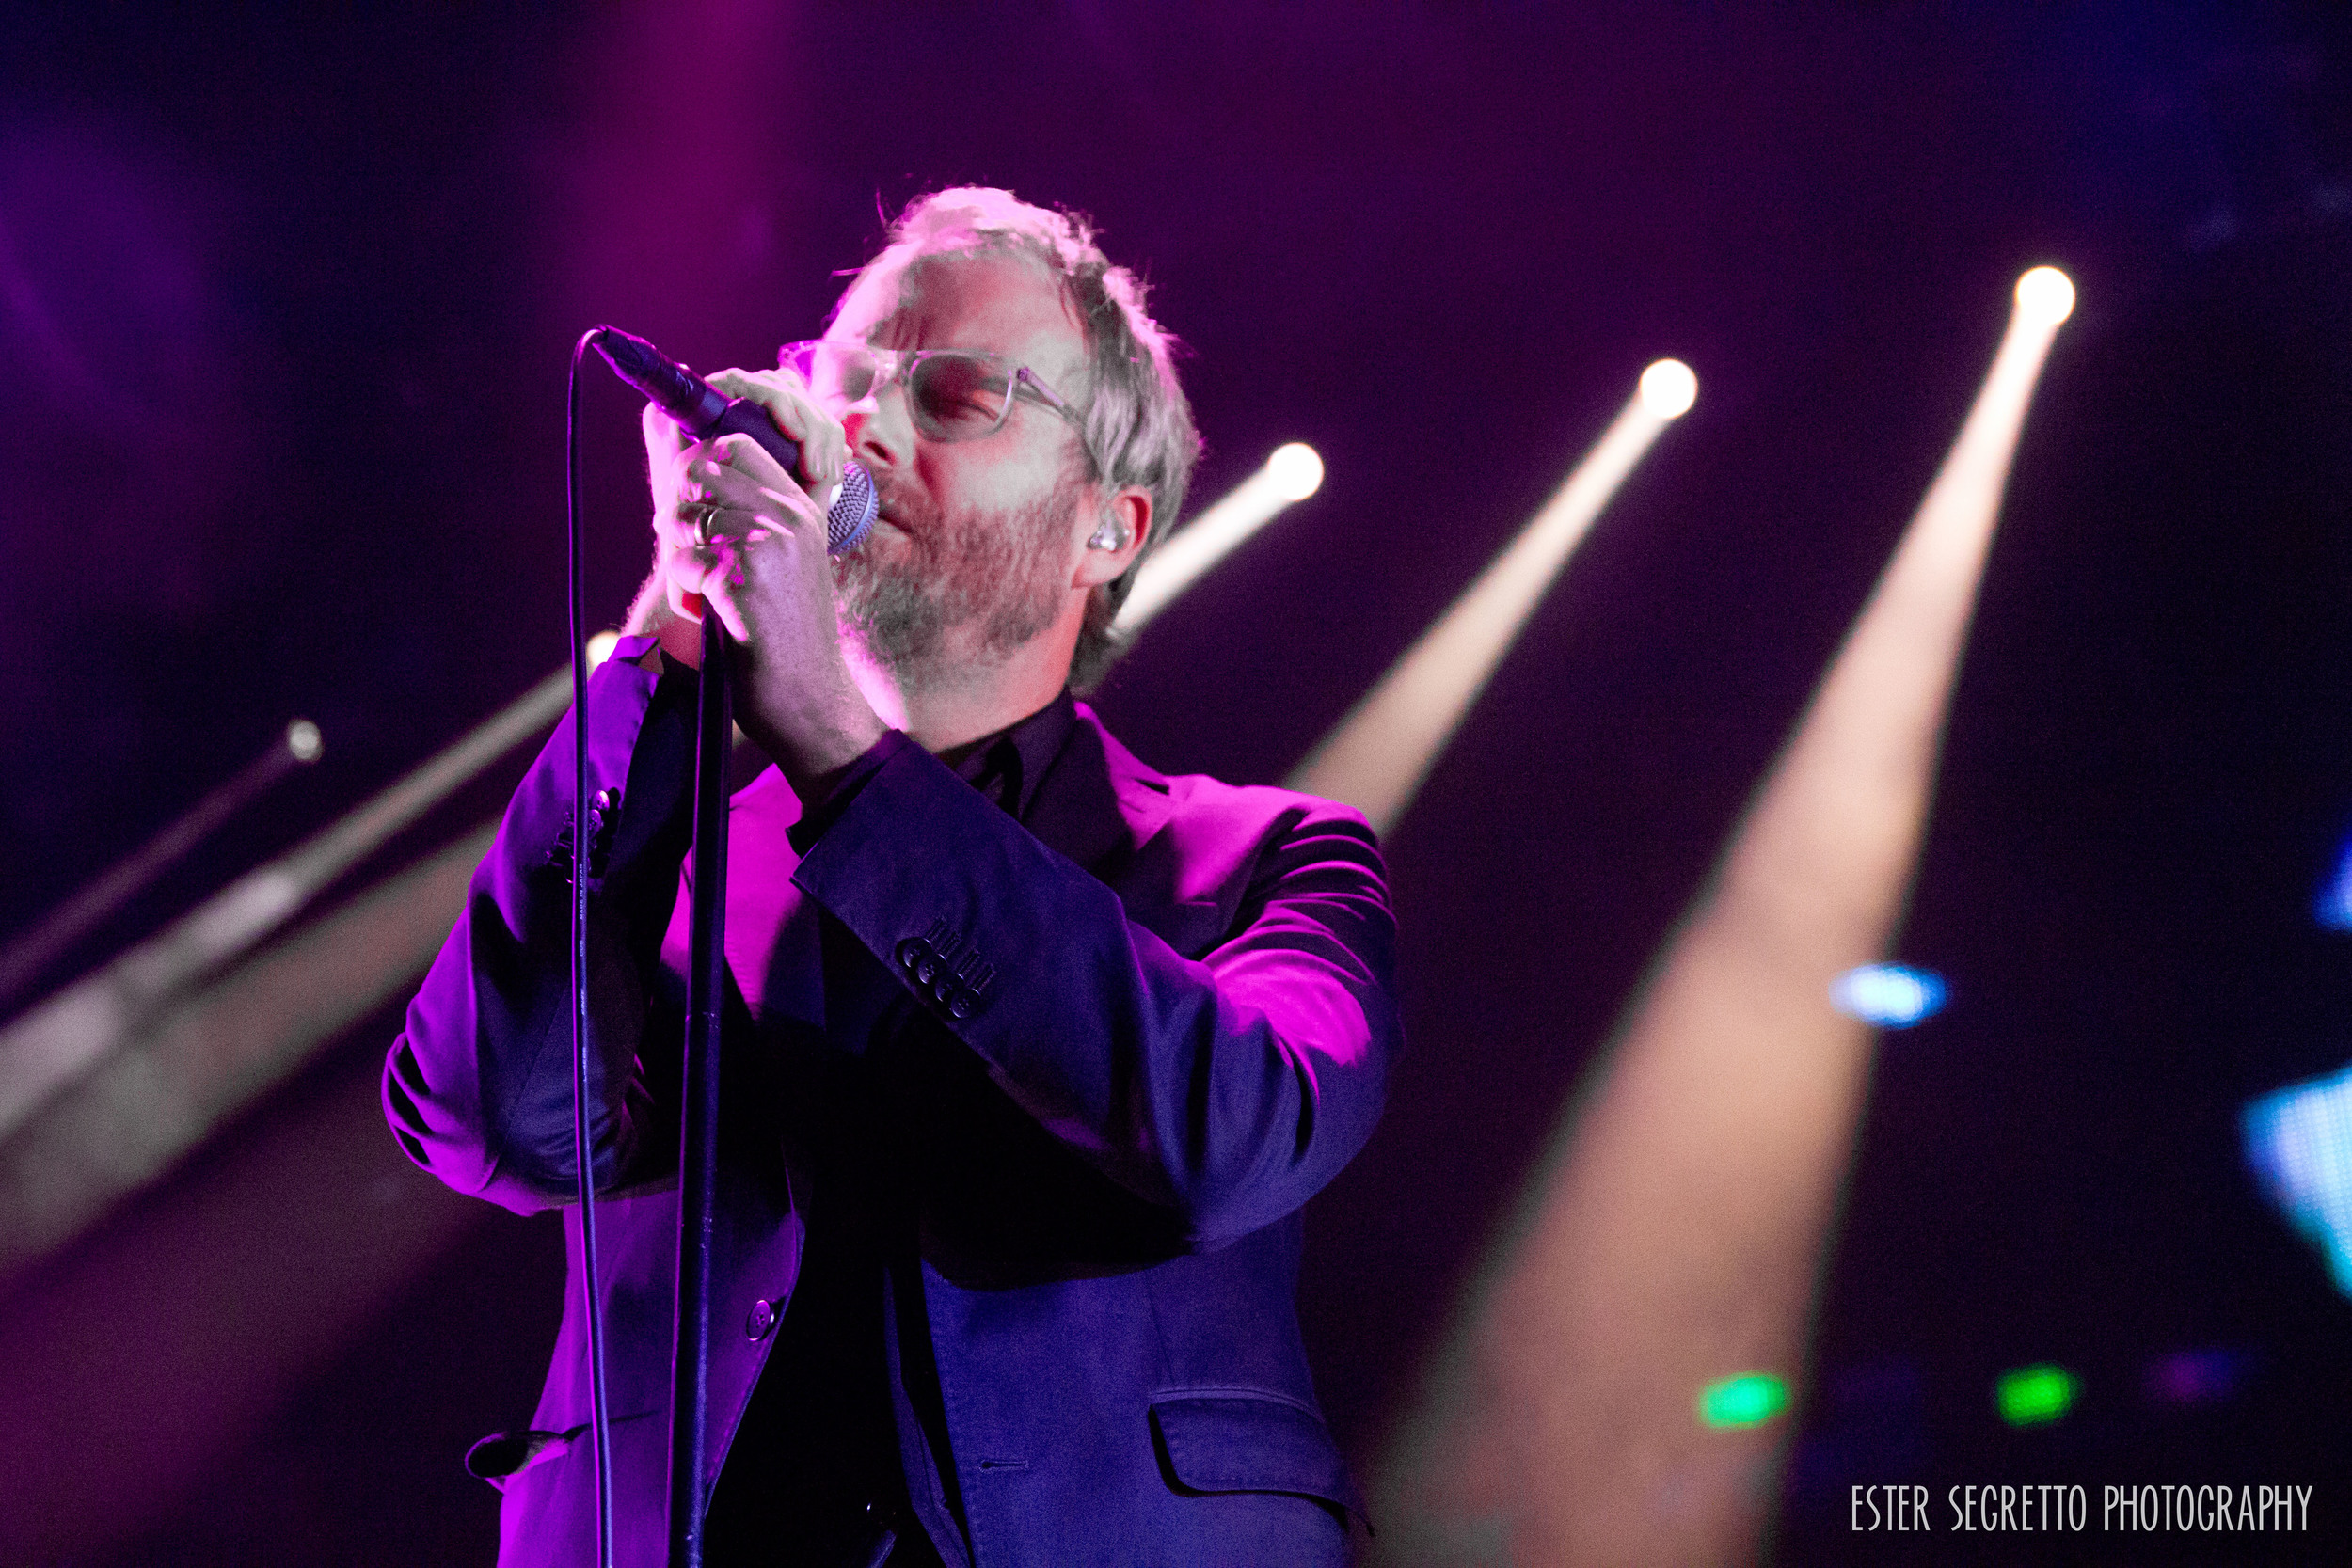 The National played an emotional hometown show this June at one of their biggest performances to date, at Barclays Center in Brooklyn, NY.